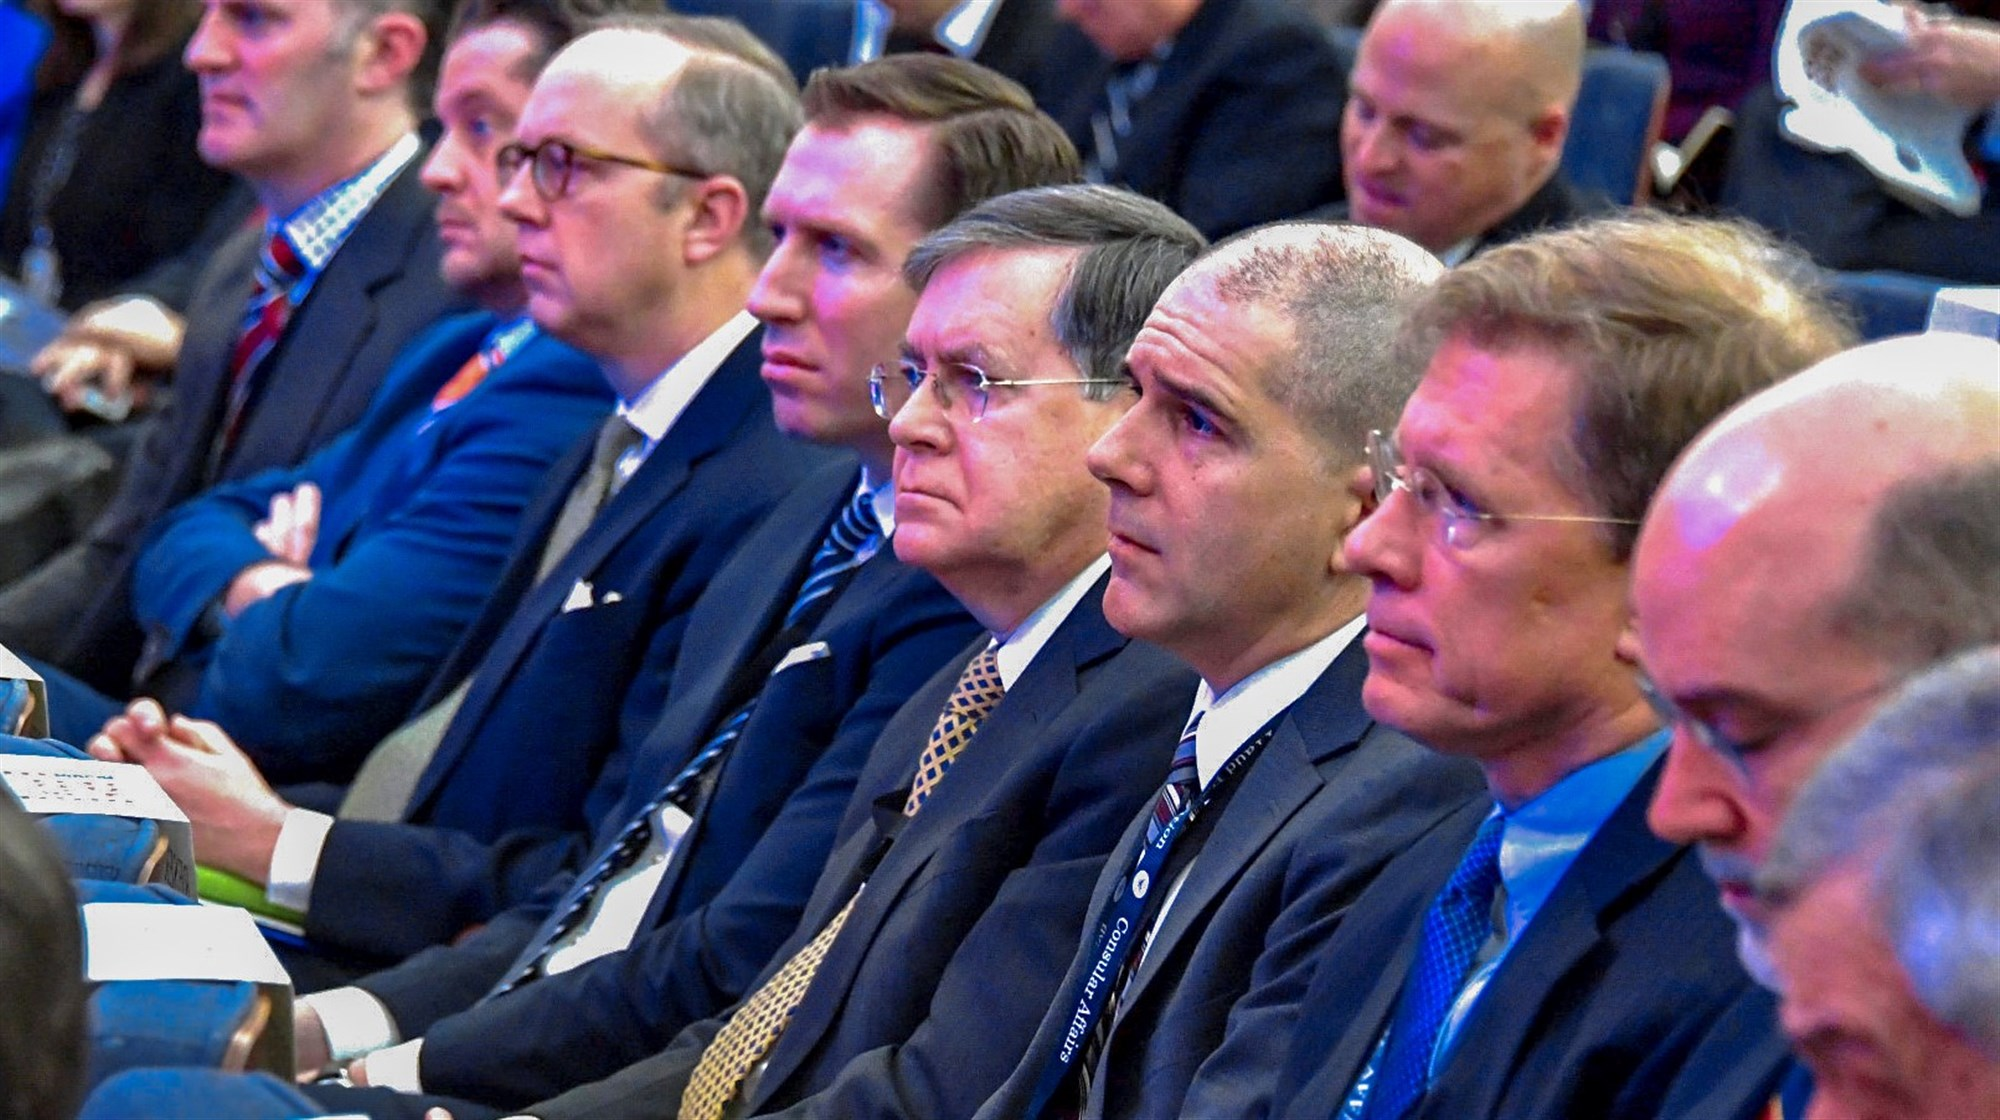 People listen to remarks made by Secretary Michael R. Pompeo at the Global Chiefs of Mission Conference, at the Department of State, on January 16, 2019. [State Department Photo by Michael Gross/Public Domain]